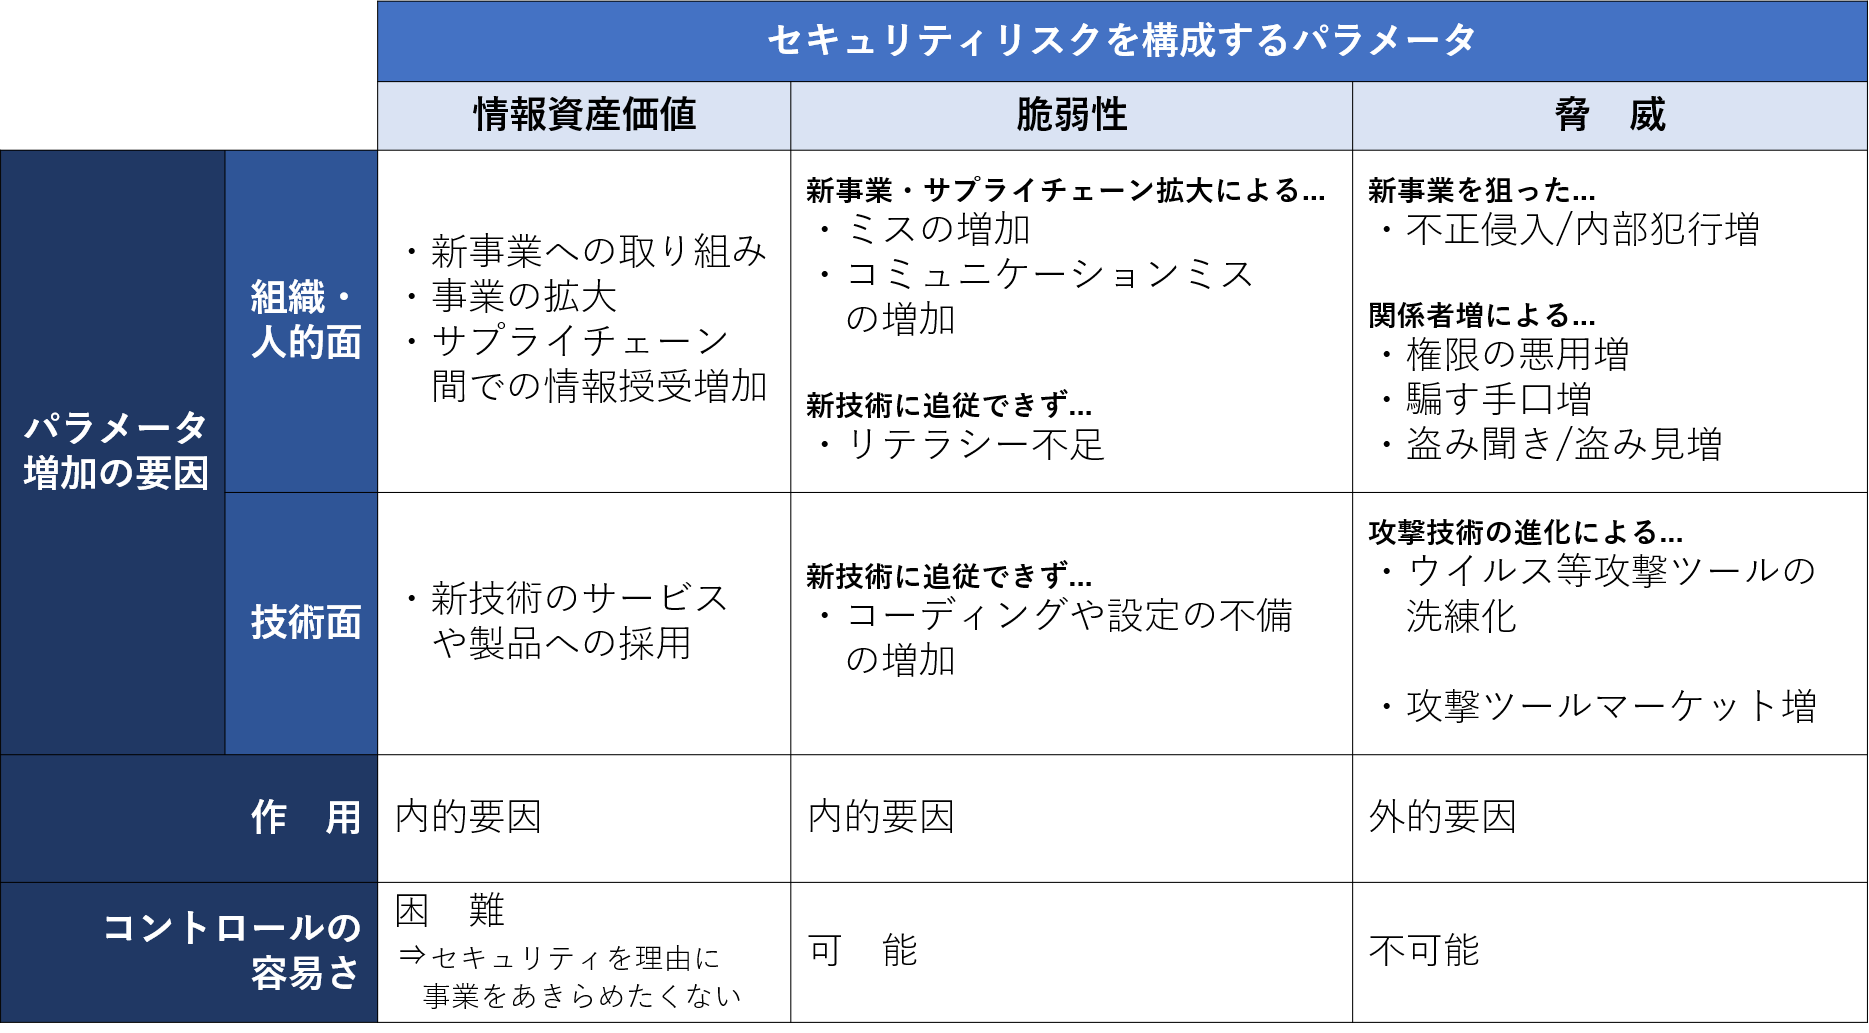 Secure SketCH_リスク増加の要因とコントロール